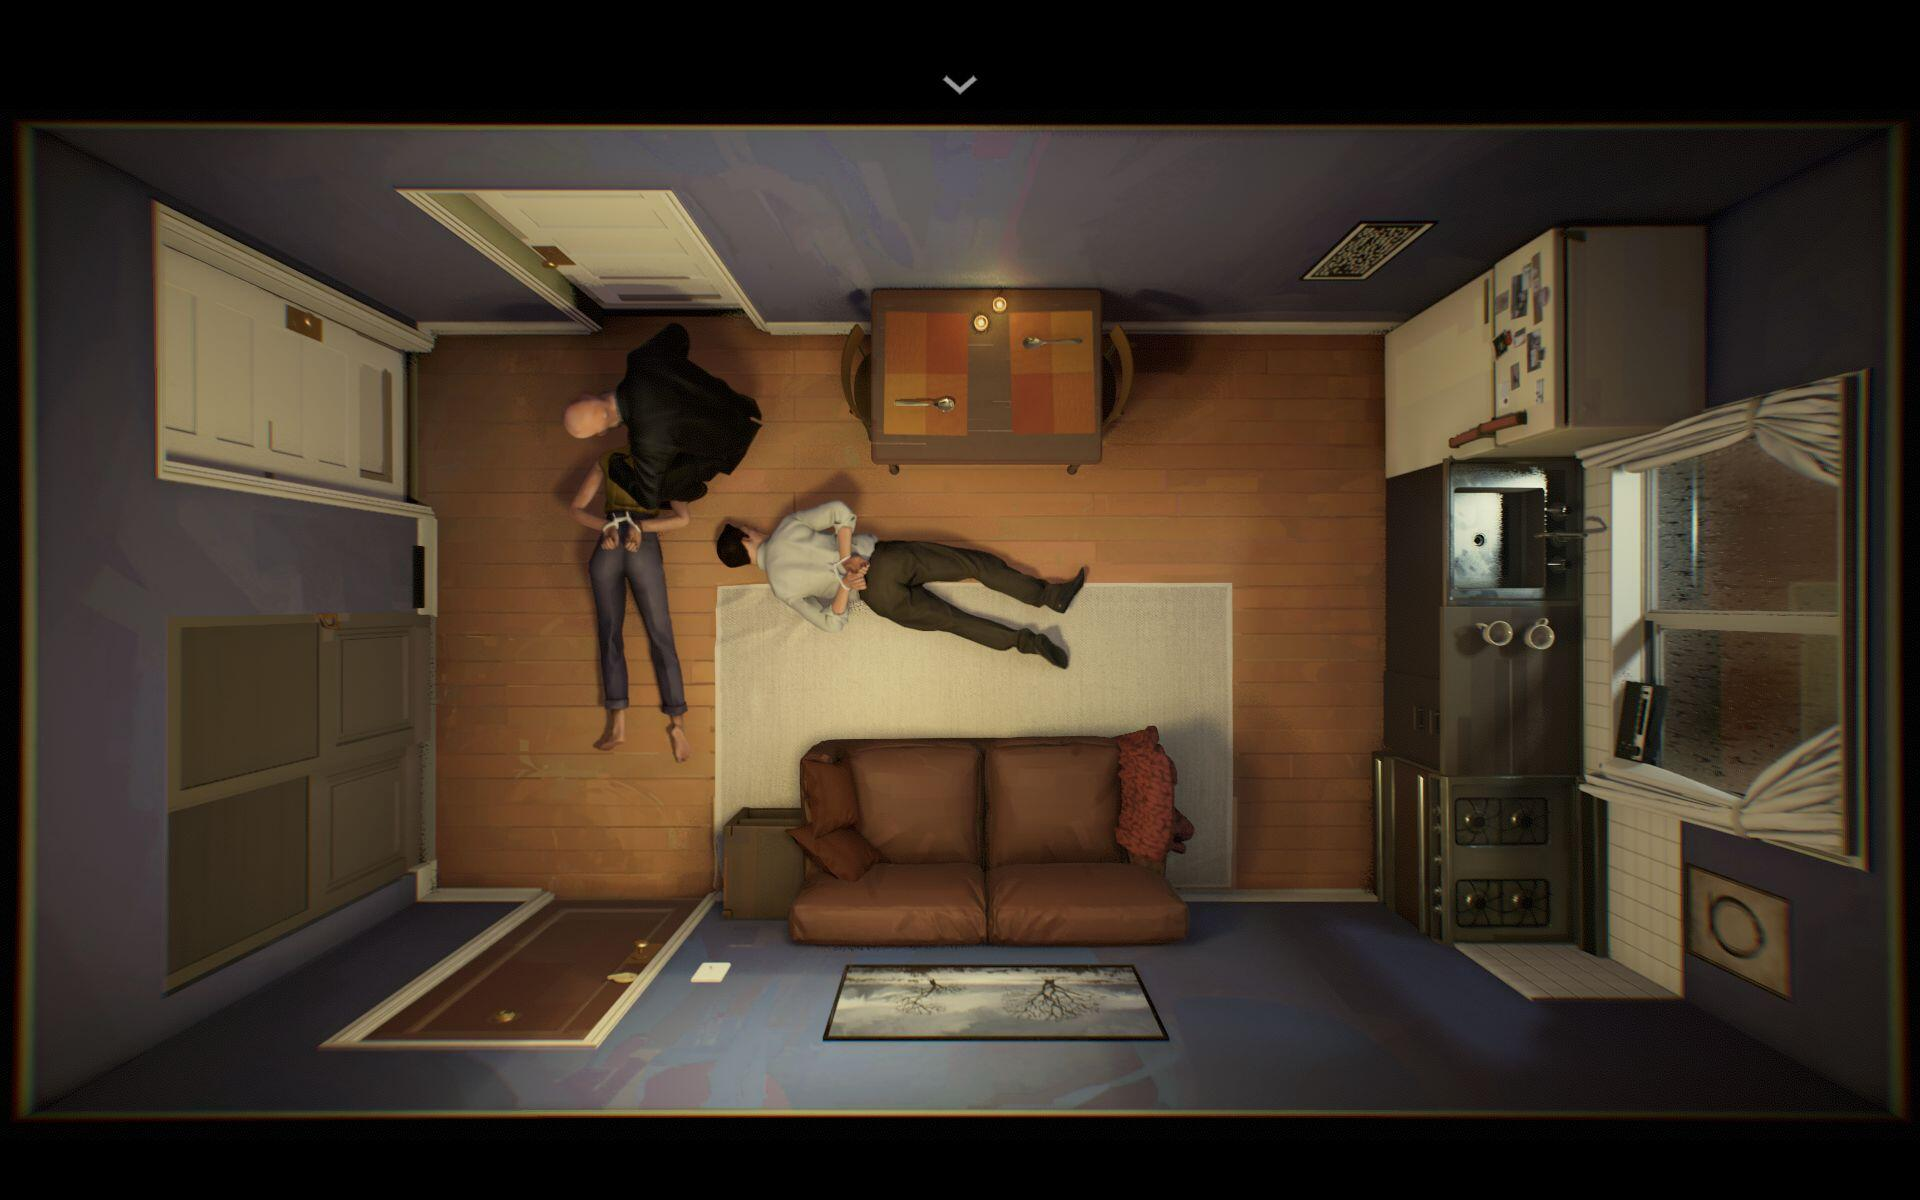 12 Minutes hands-on: A detail-oriented time-loop thriller that's equal  parts frustrating and rewarding - CNET